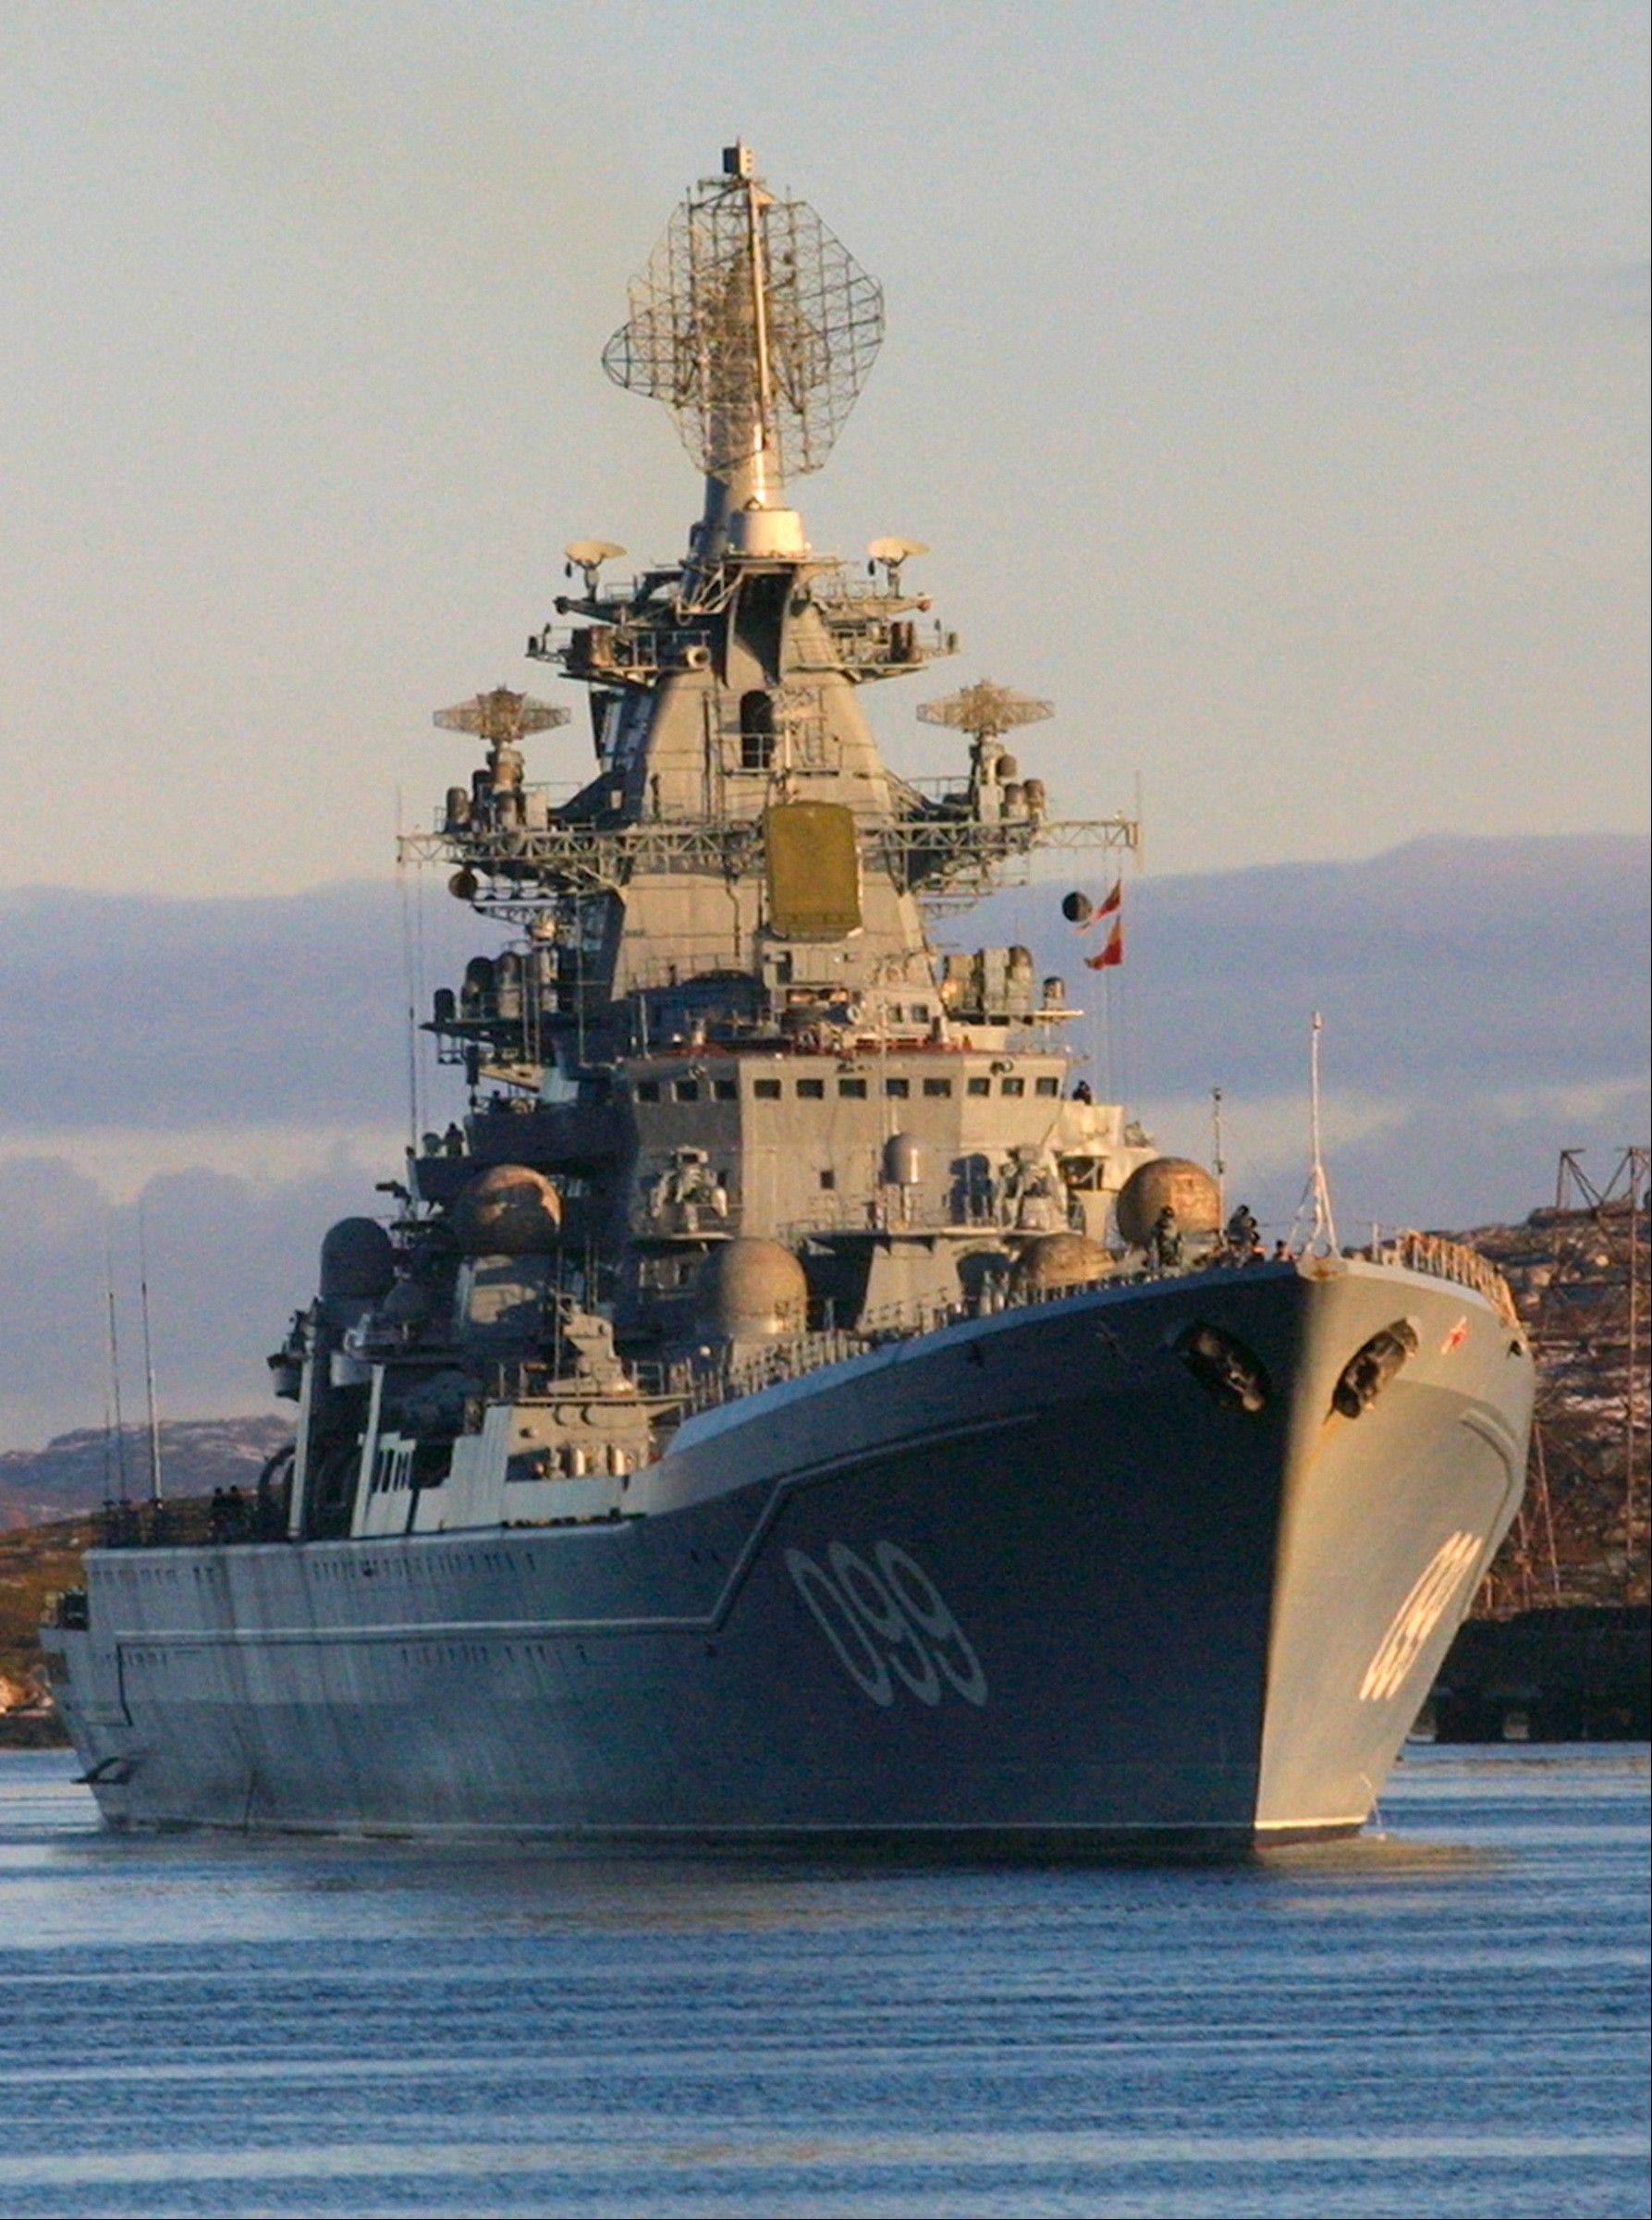 Associated Press/October, 2001 The Pyotr Velikiy, Peter the Great, Russian nuclear-powered missile cruiser. Vice Admiral Viktor Chirkov, Russia's navy chief said Friday that Moscow is talking to Cuba, Vietnam and the Seychelles about housing Russian navy ships.